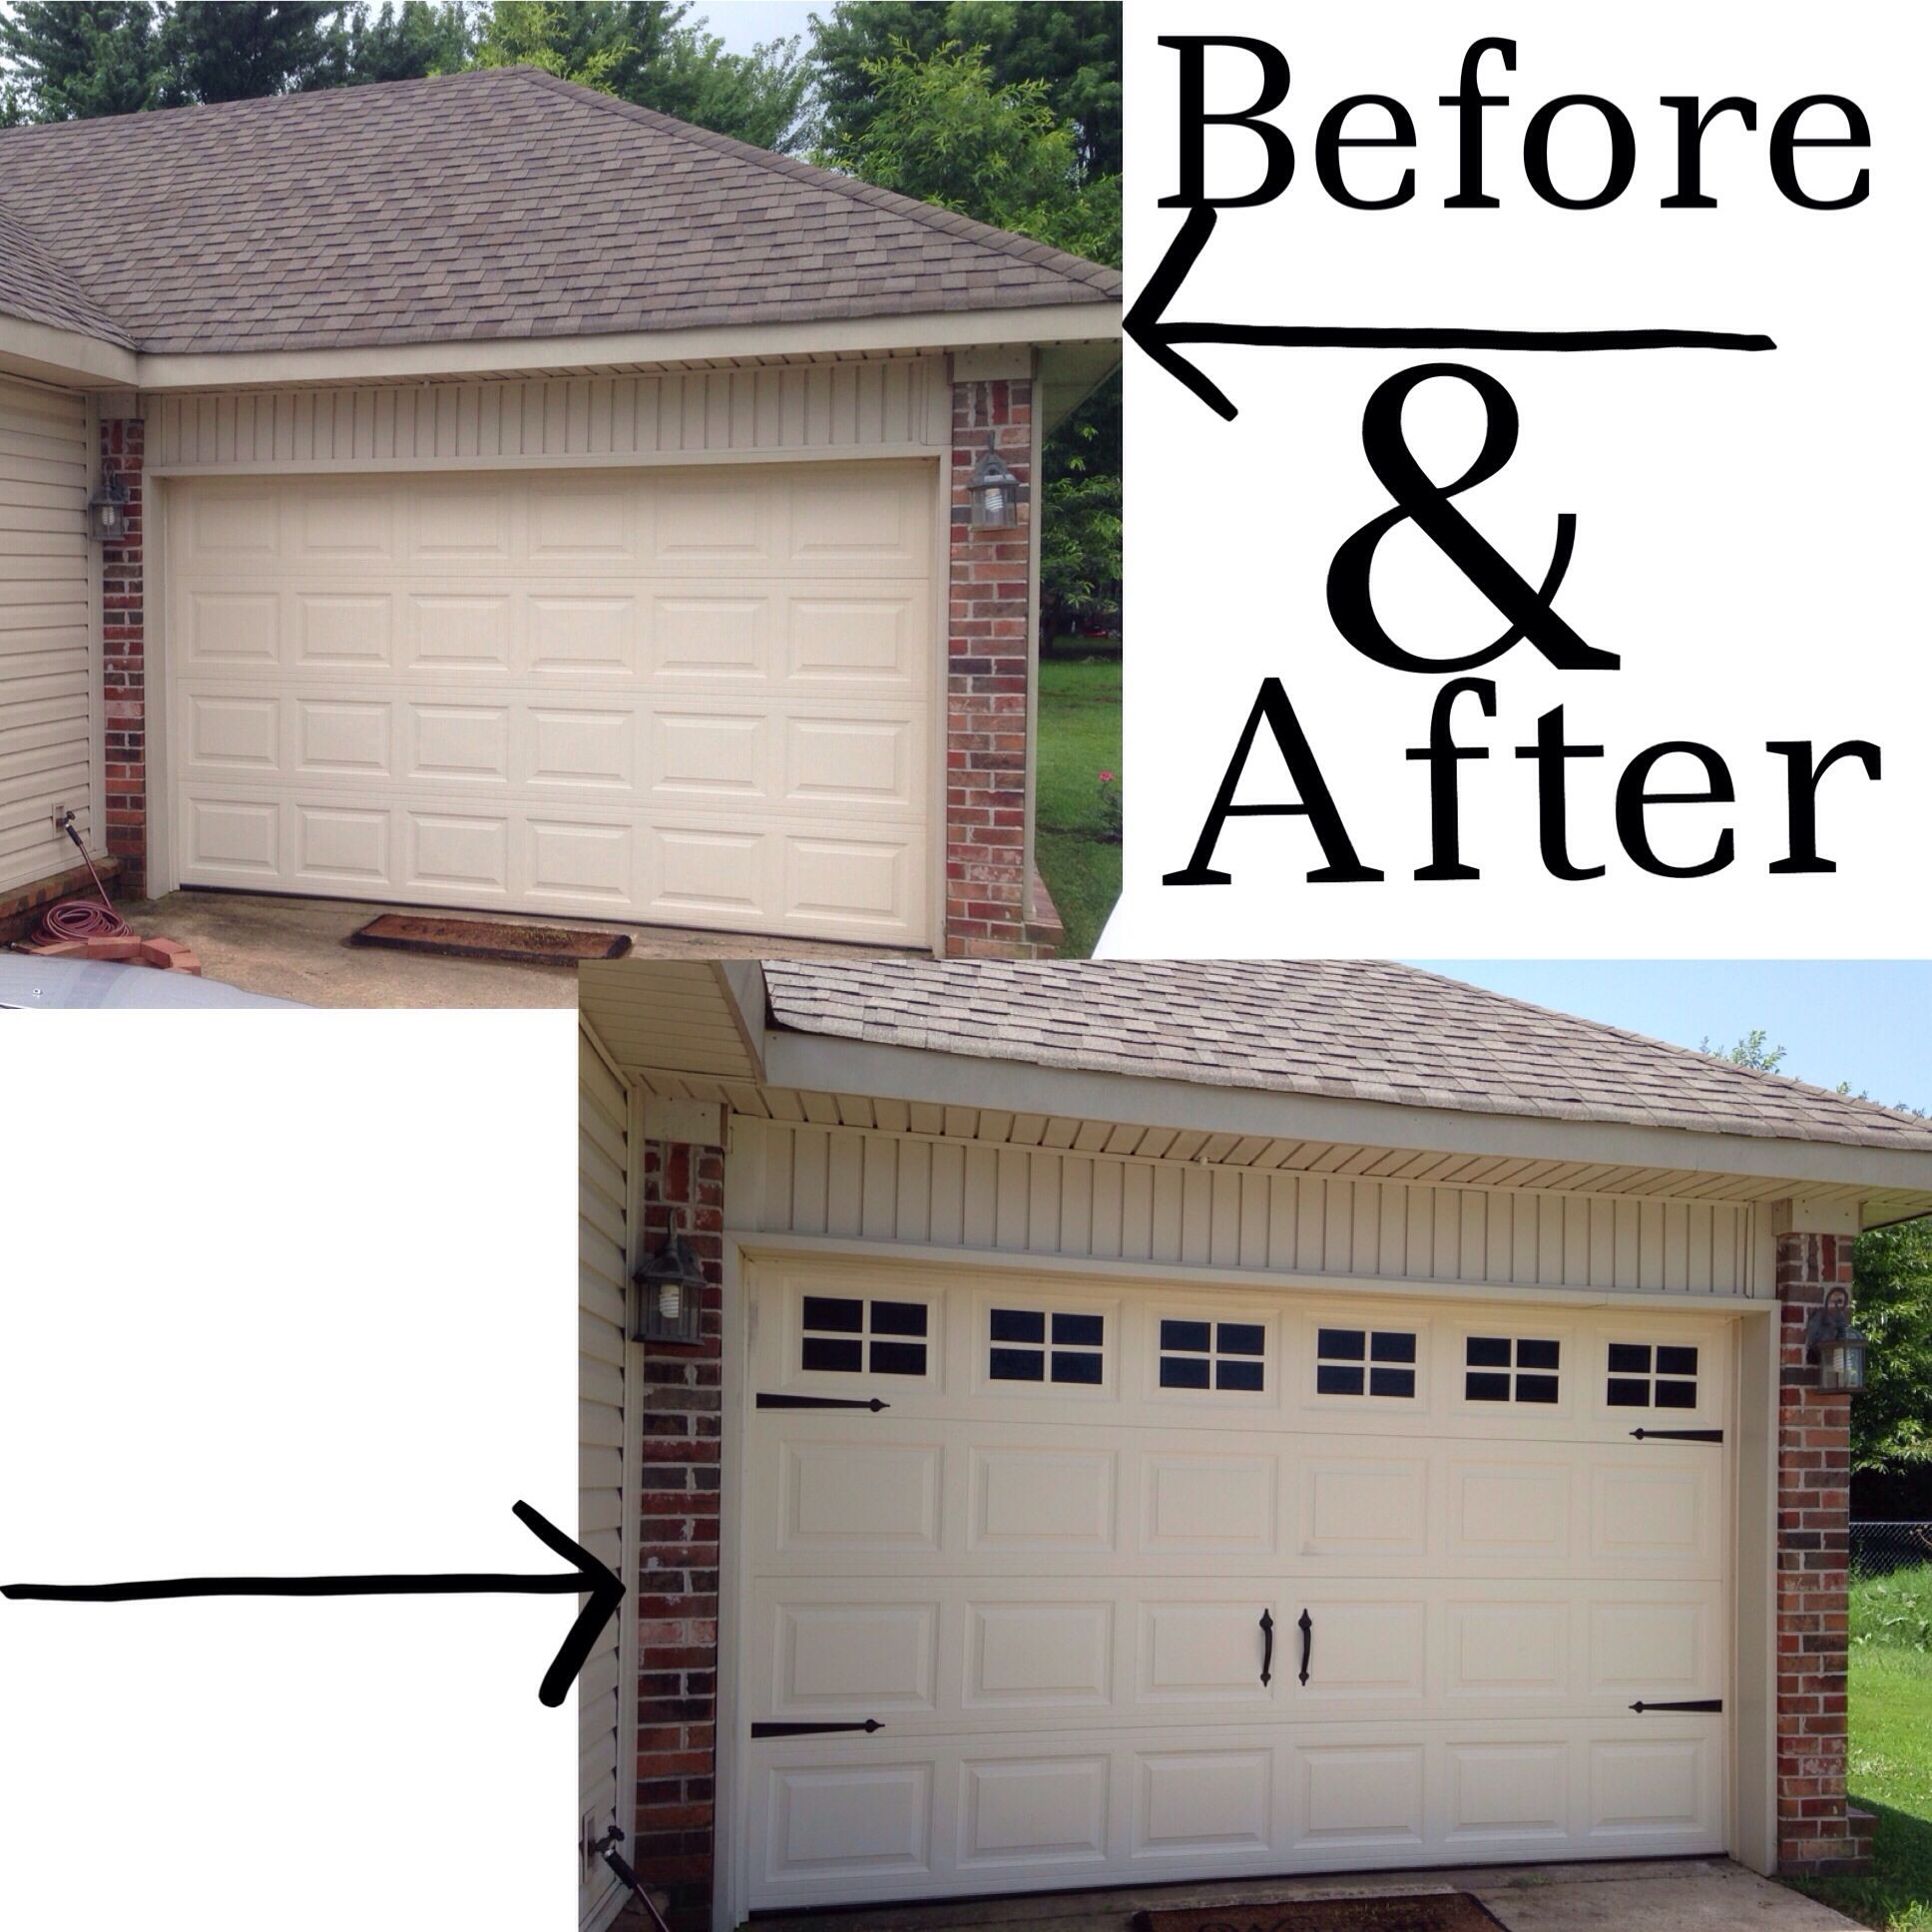 Fast and easy way to dress up the garage door and add curb appeal fast and easy way to dress up the garage door and add curb appeal to your rubansaba